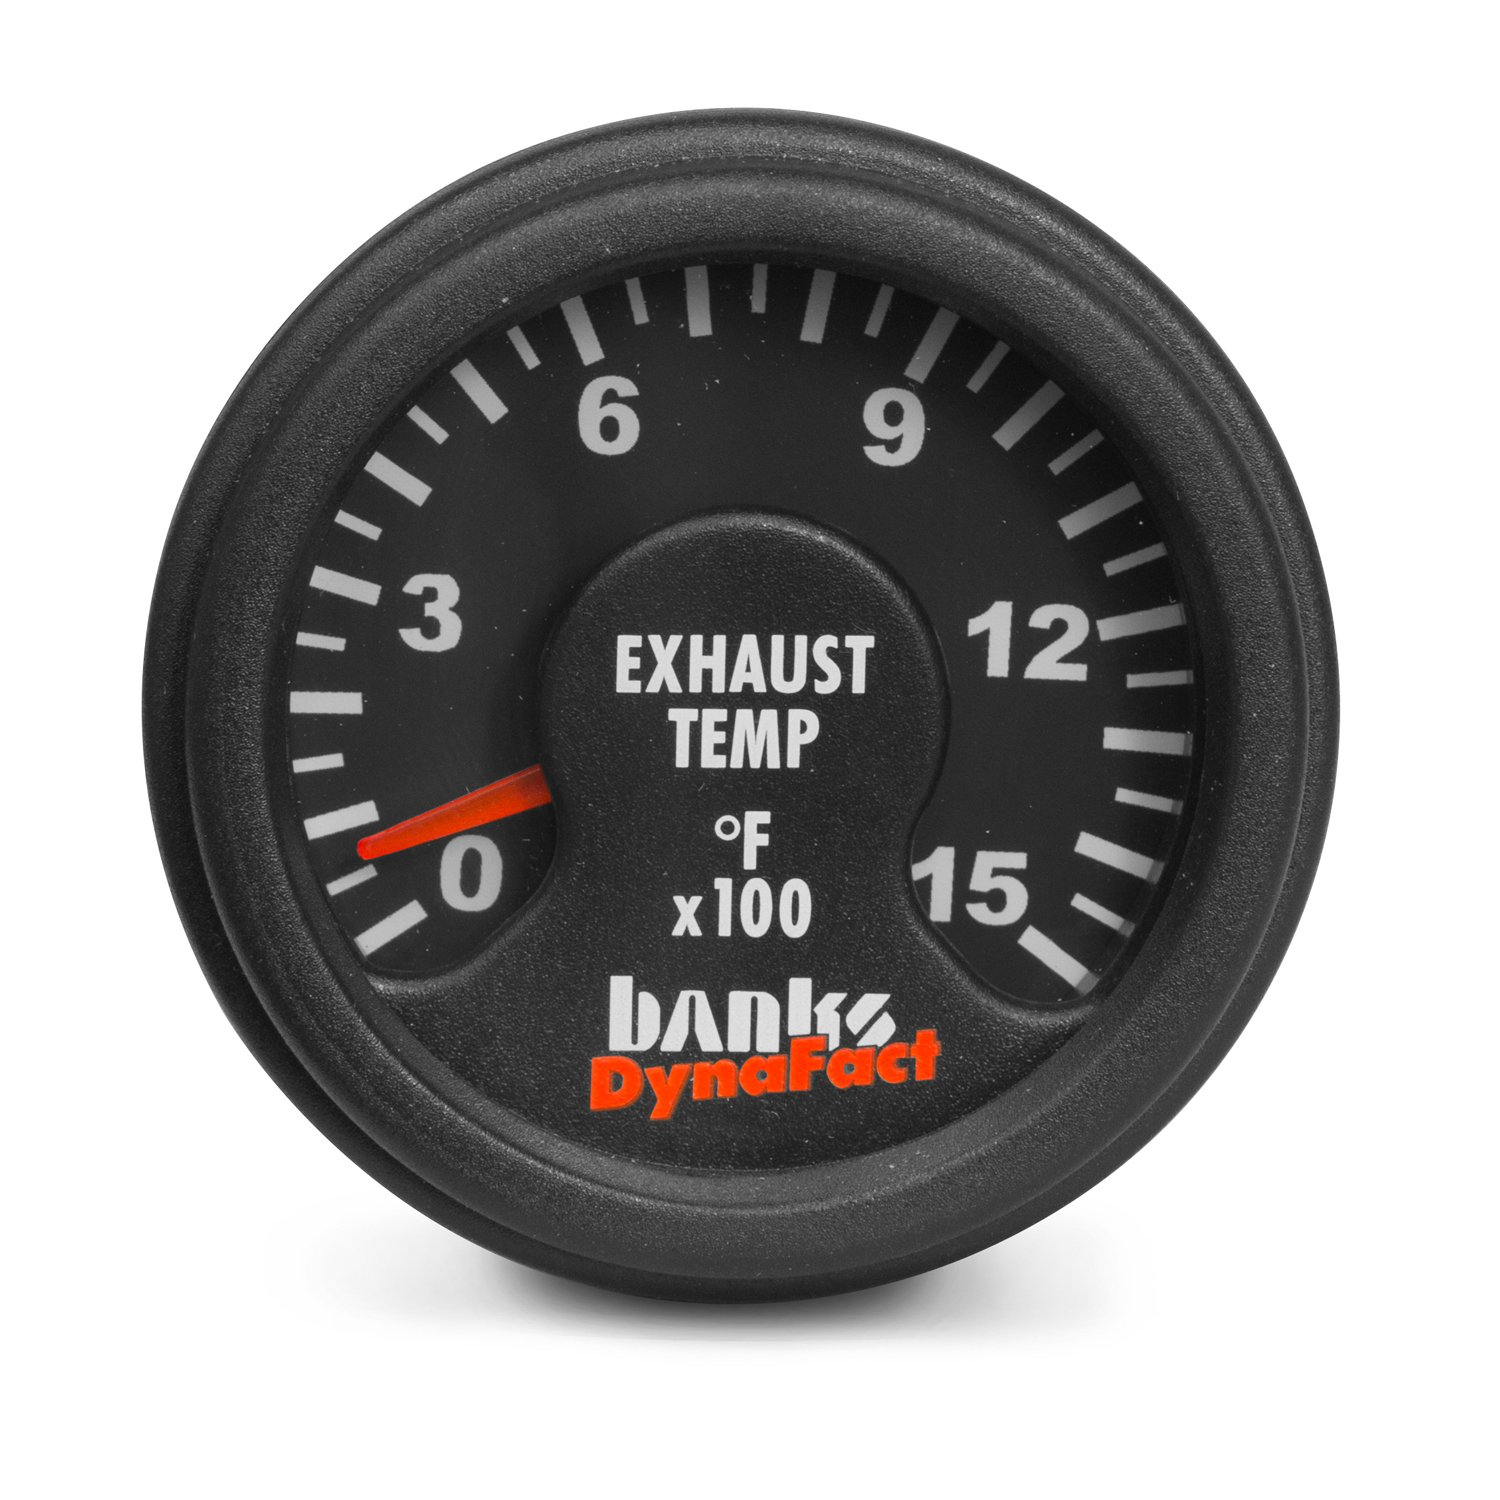 Banks 64009 - Banks DynaFact Gauges